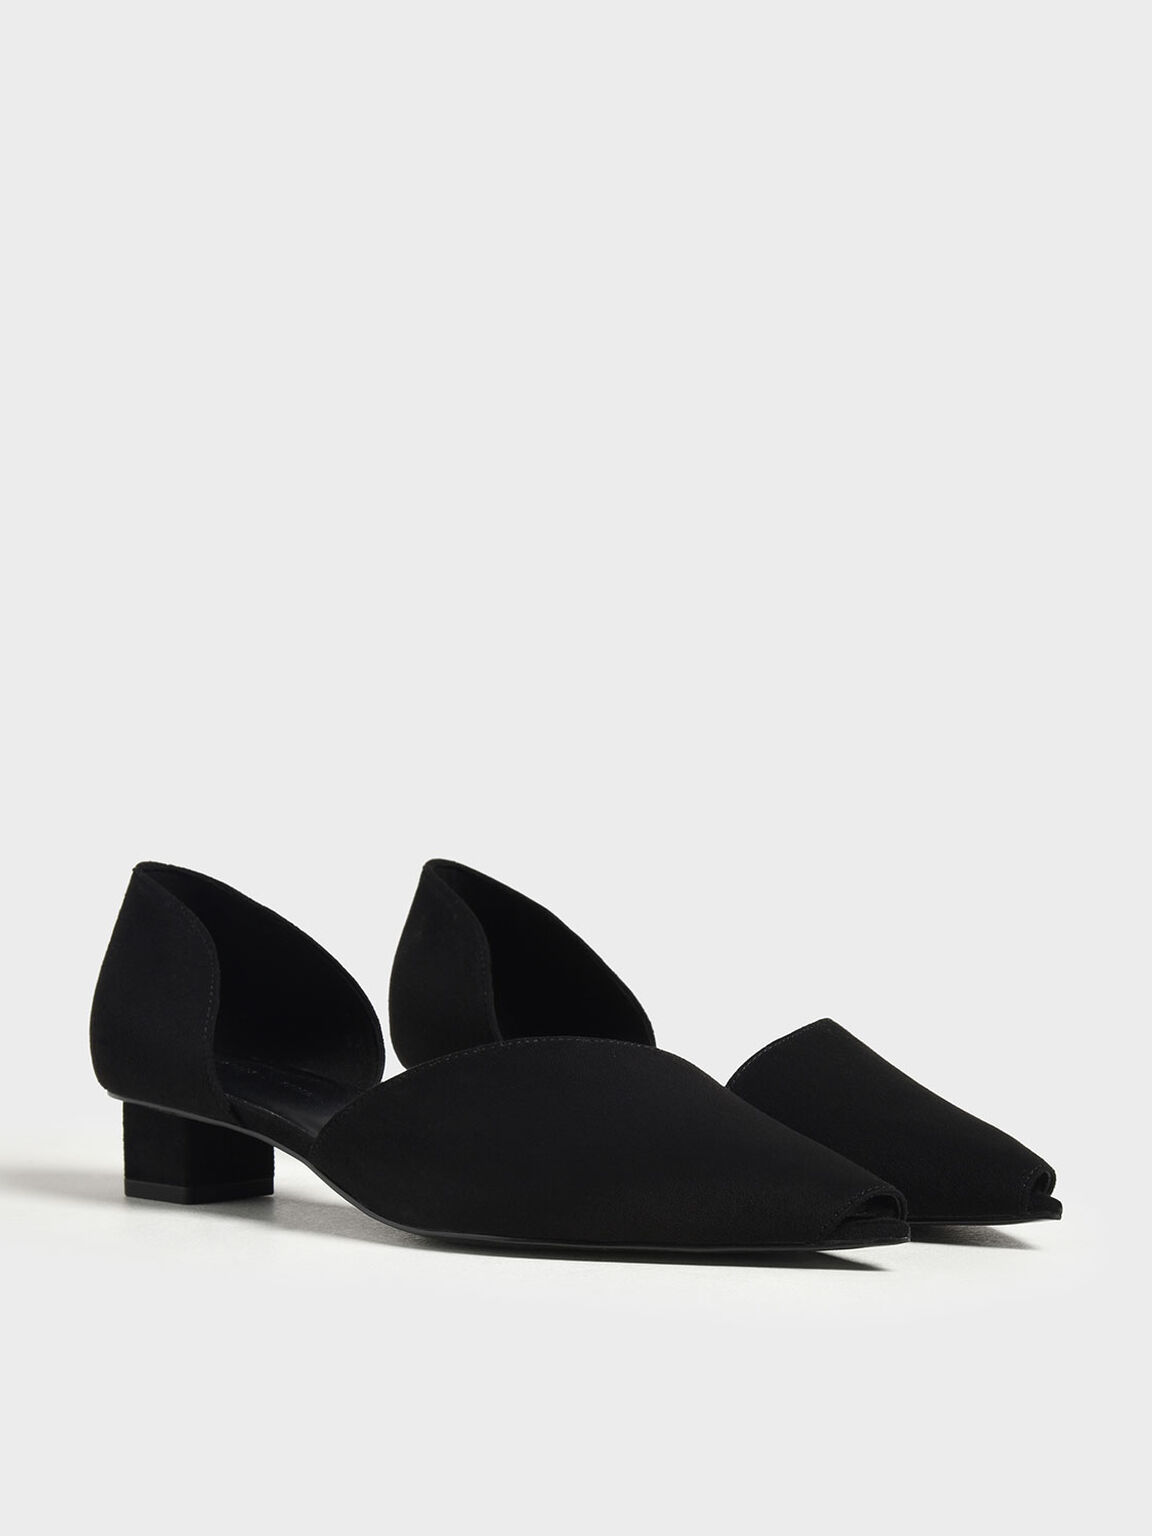 Asymmetrical Peep Toe Pumps, Black, hi-res